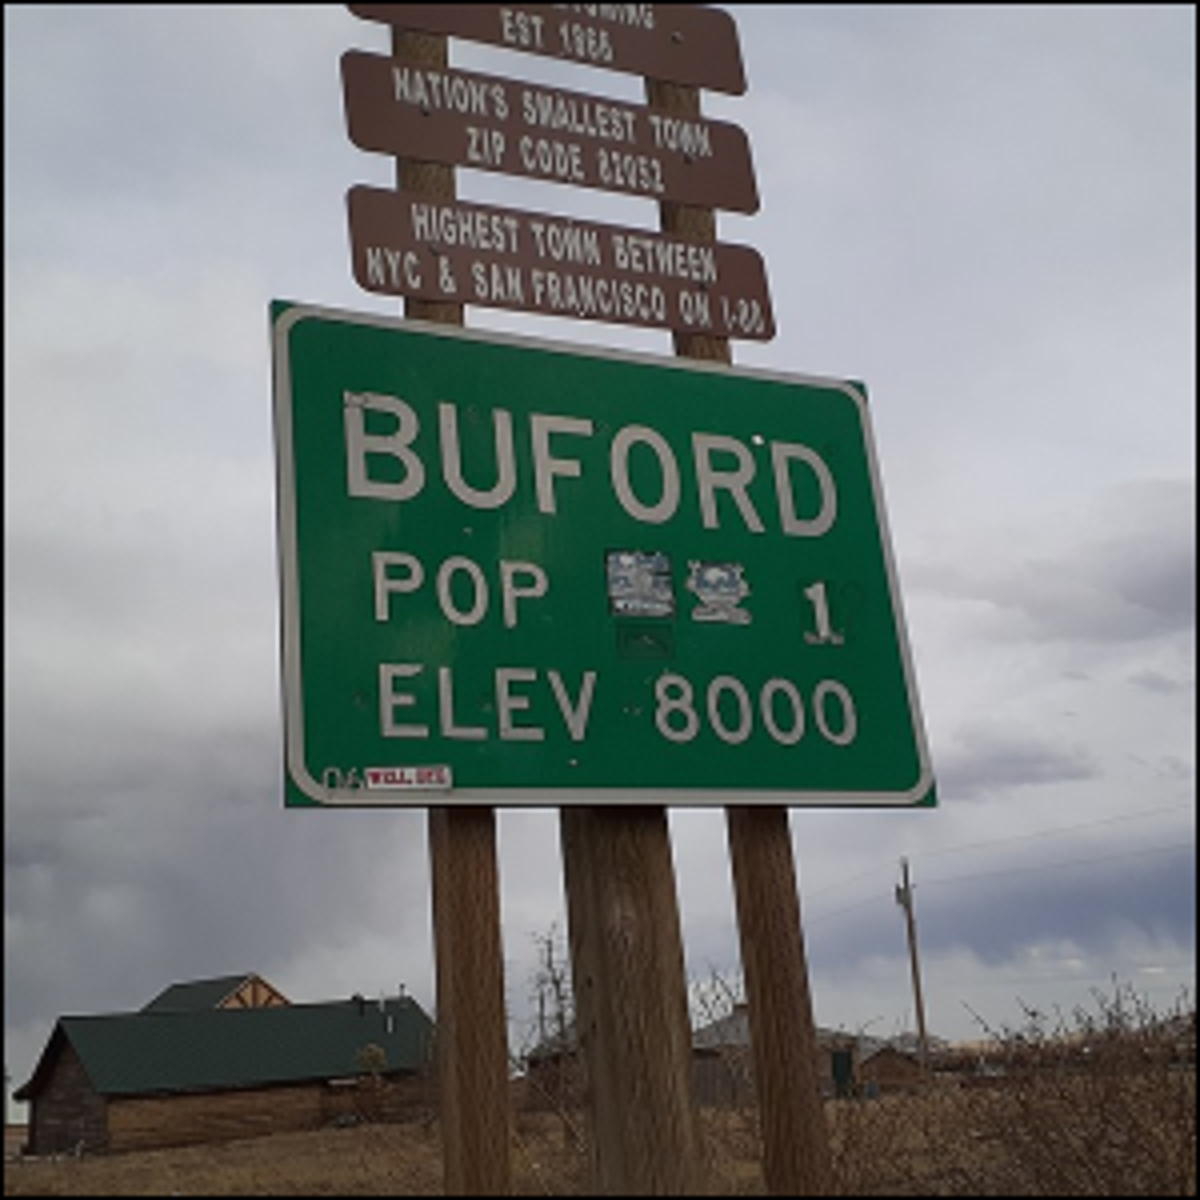 The old population sign for the now abandoned town of Buford, Wyoming.